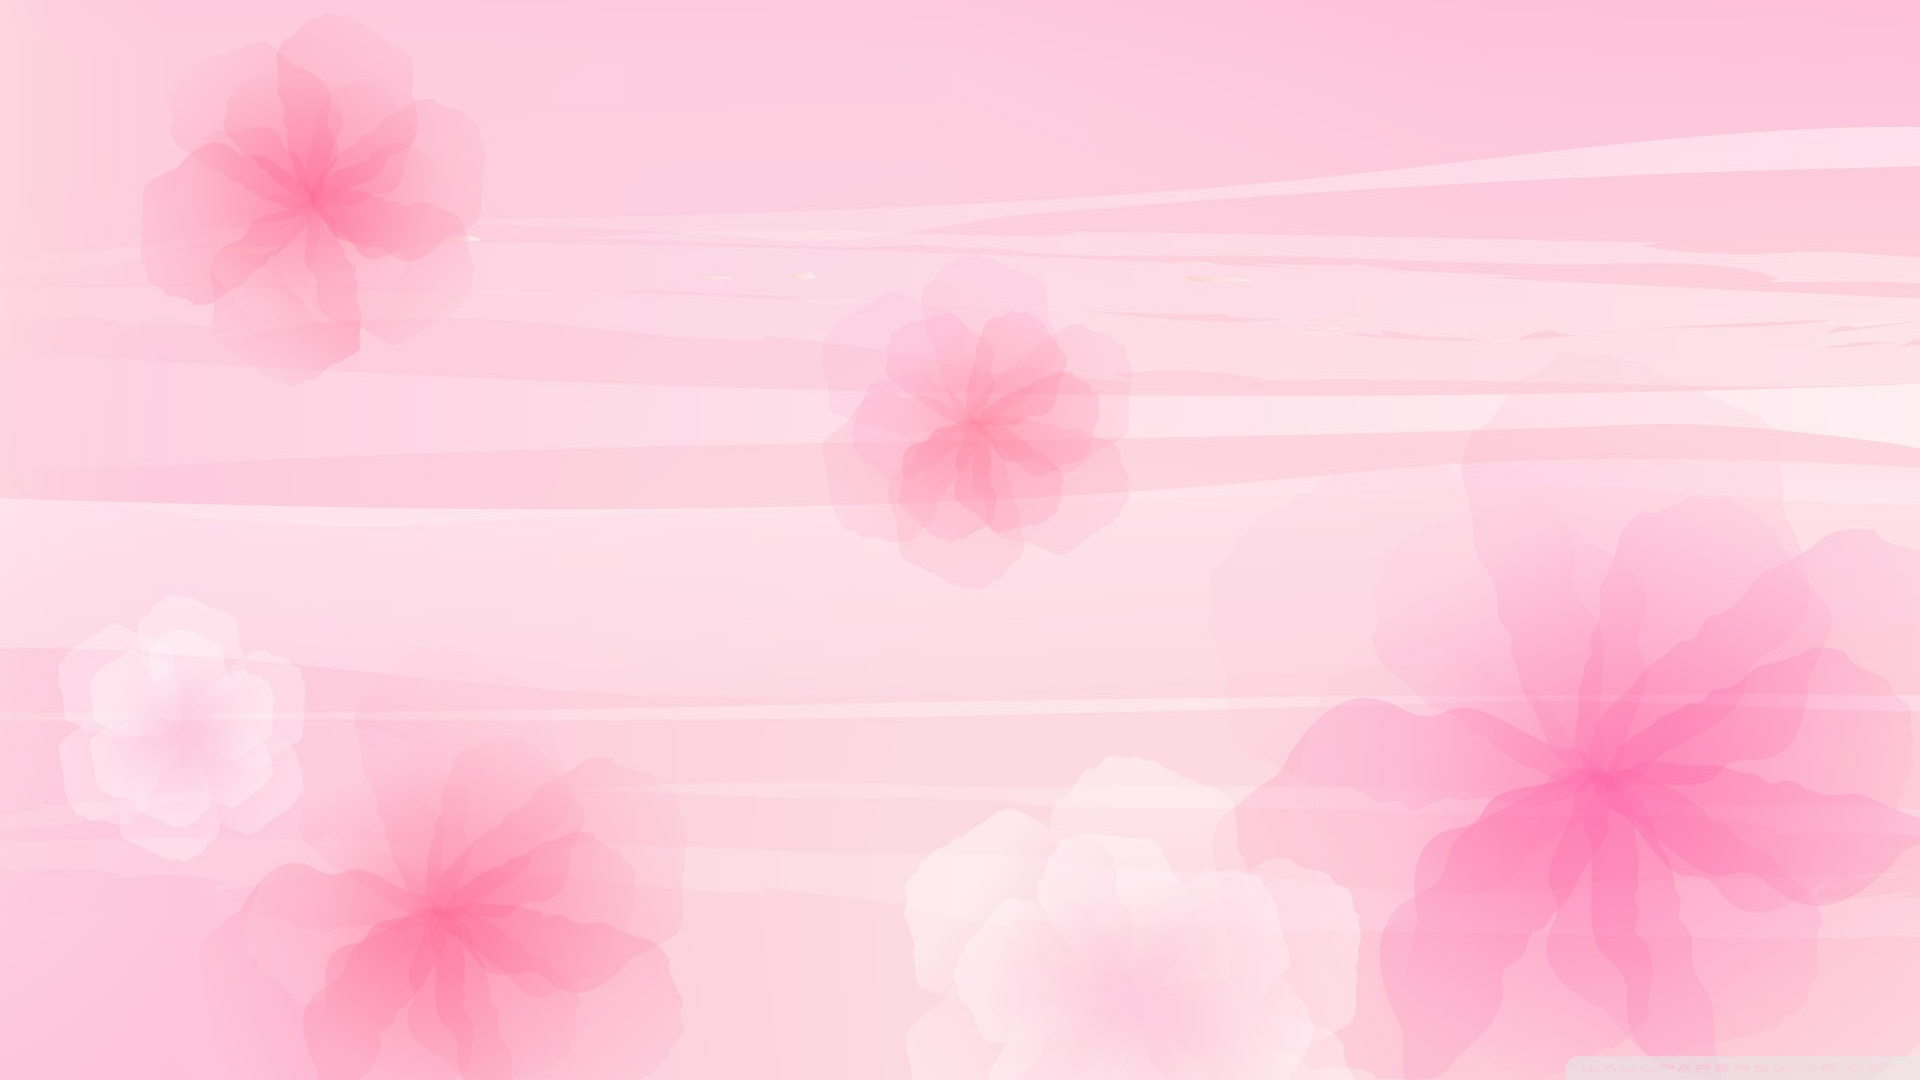 Background Images Flowers Pink Sf Wallpaper